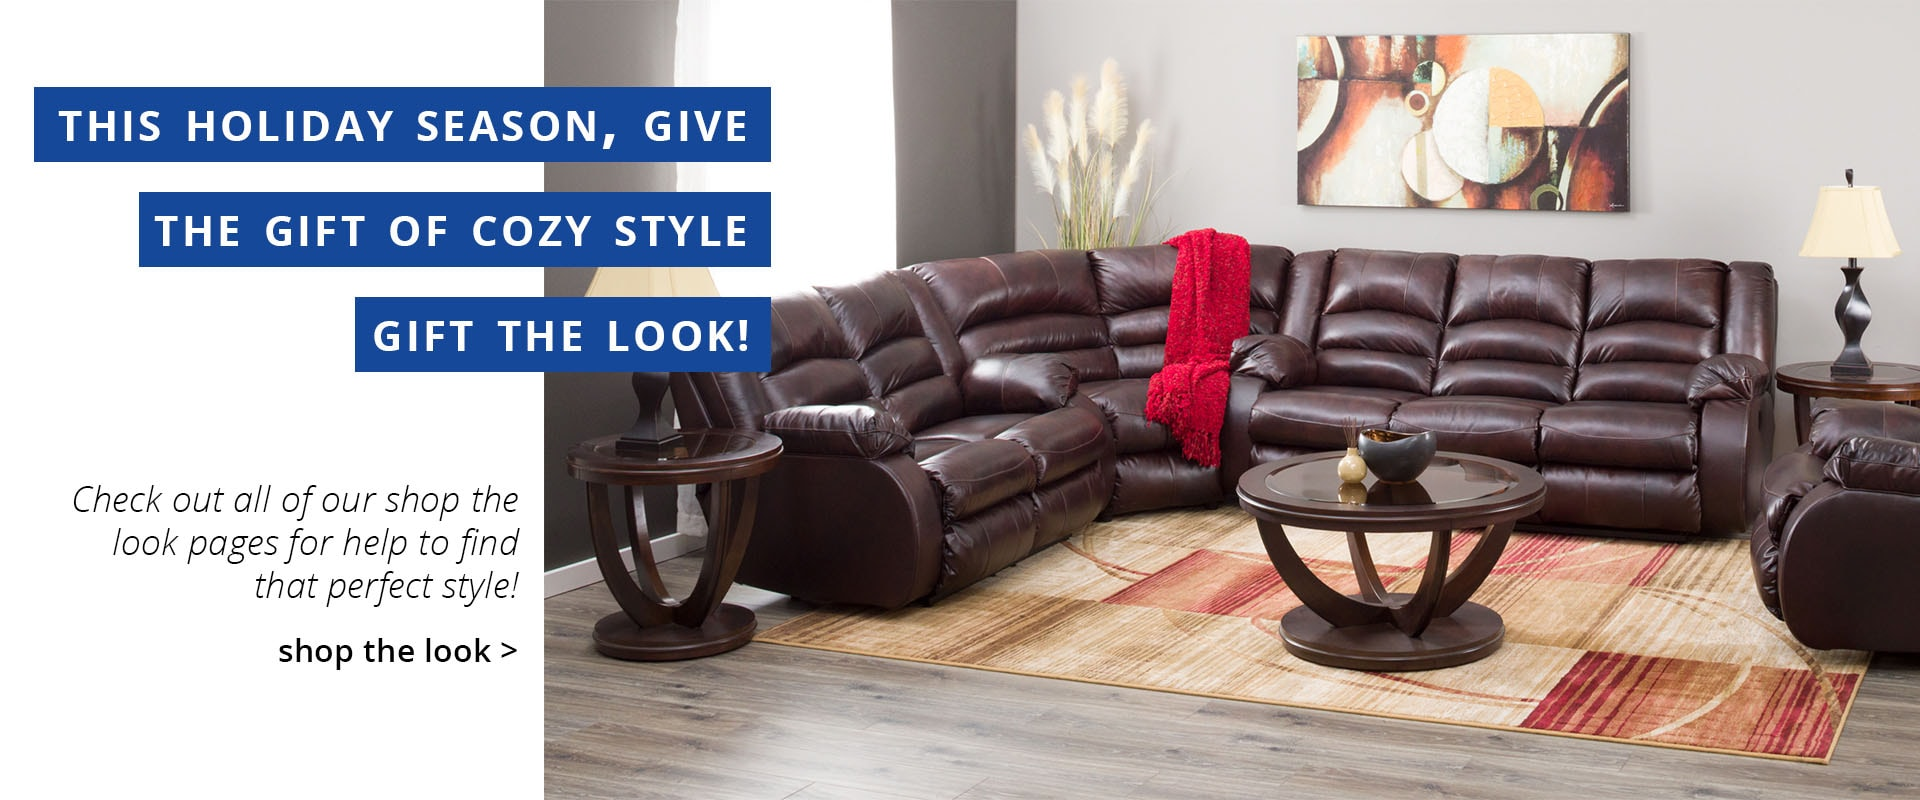 American Furniture Warehouse Mobile Banner · Give The Gift Of Style, Gift  The Look!